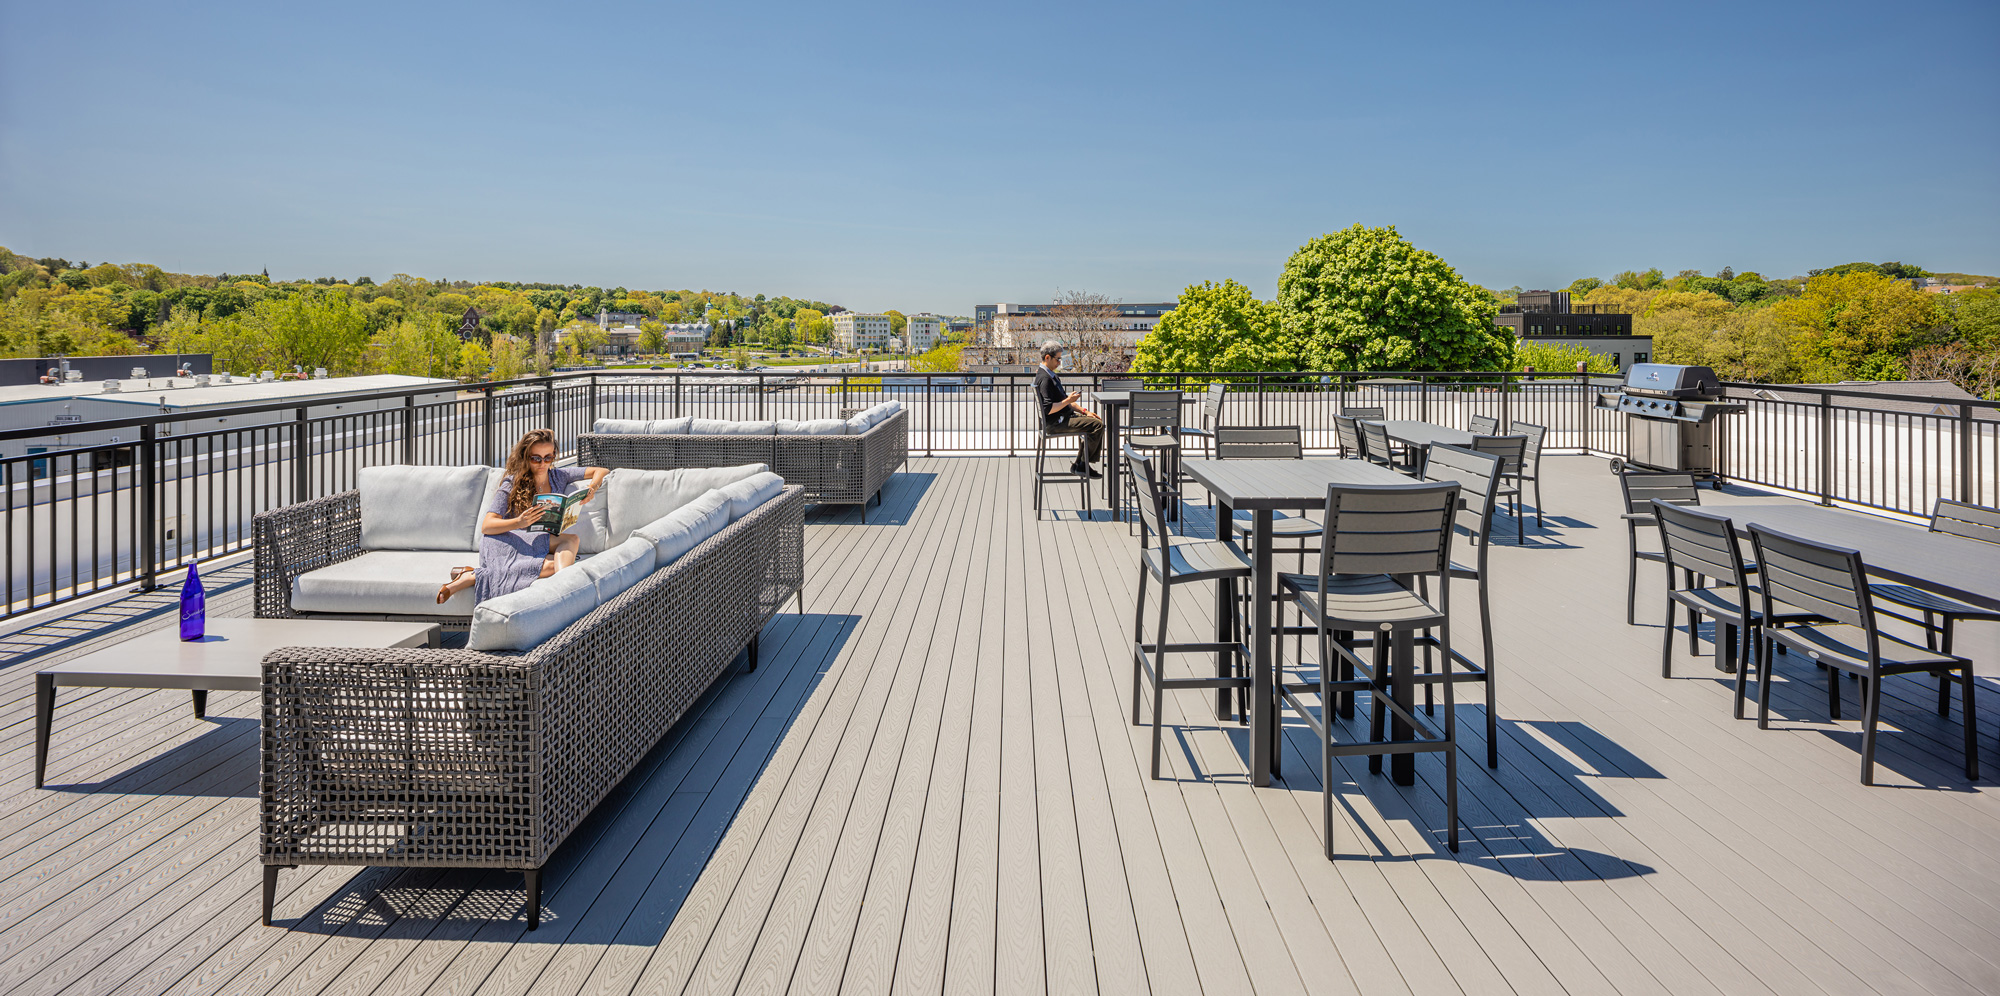 Outdoor furniture including tables, high-top tables and lounge furniture on a roof deck on a bright summer day with a woman reading on the left, and a man checking his phone in the middle.